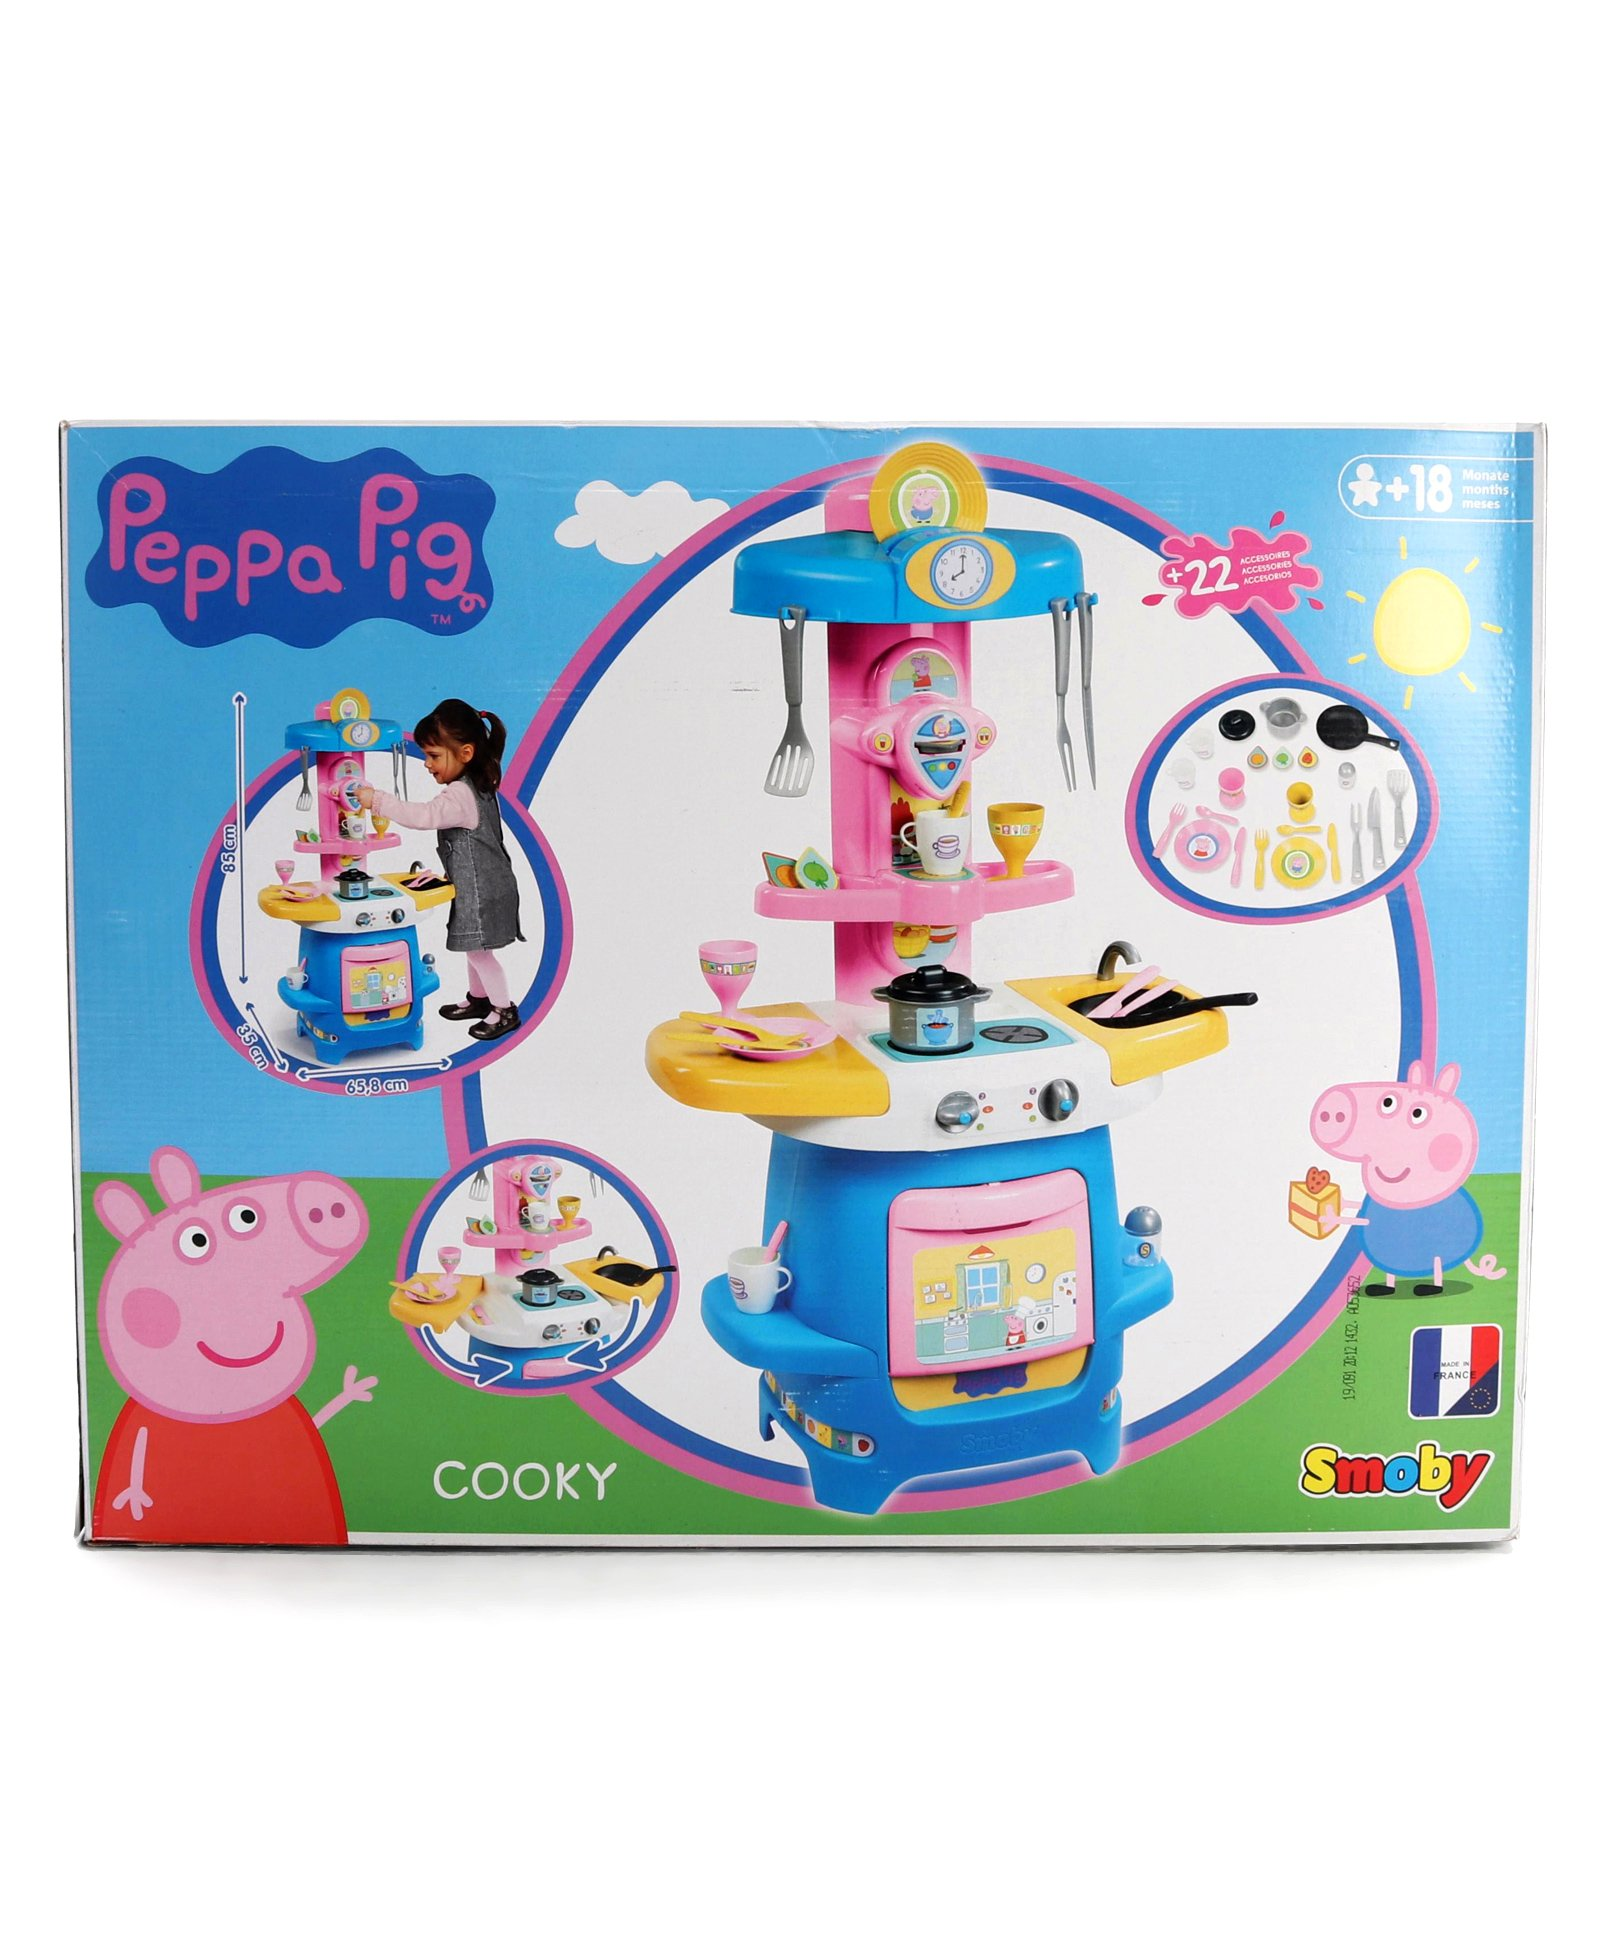 Peppa Pig Cooky Kitchen Set Multicolor Online India Buy Pretend Play Toys For 18 Months 6 Years At Firstcry Com 3438818